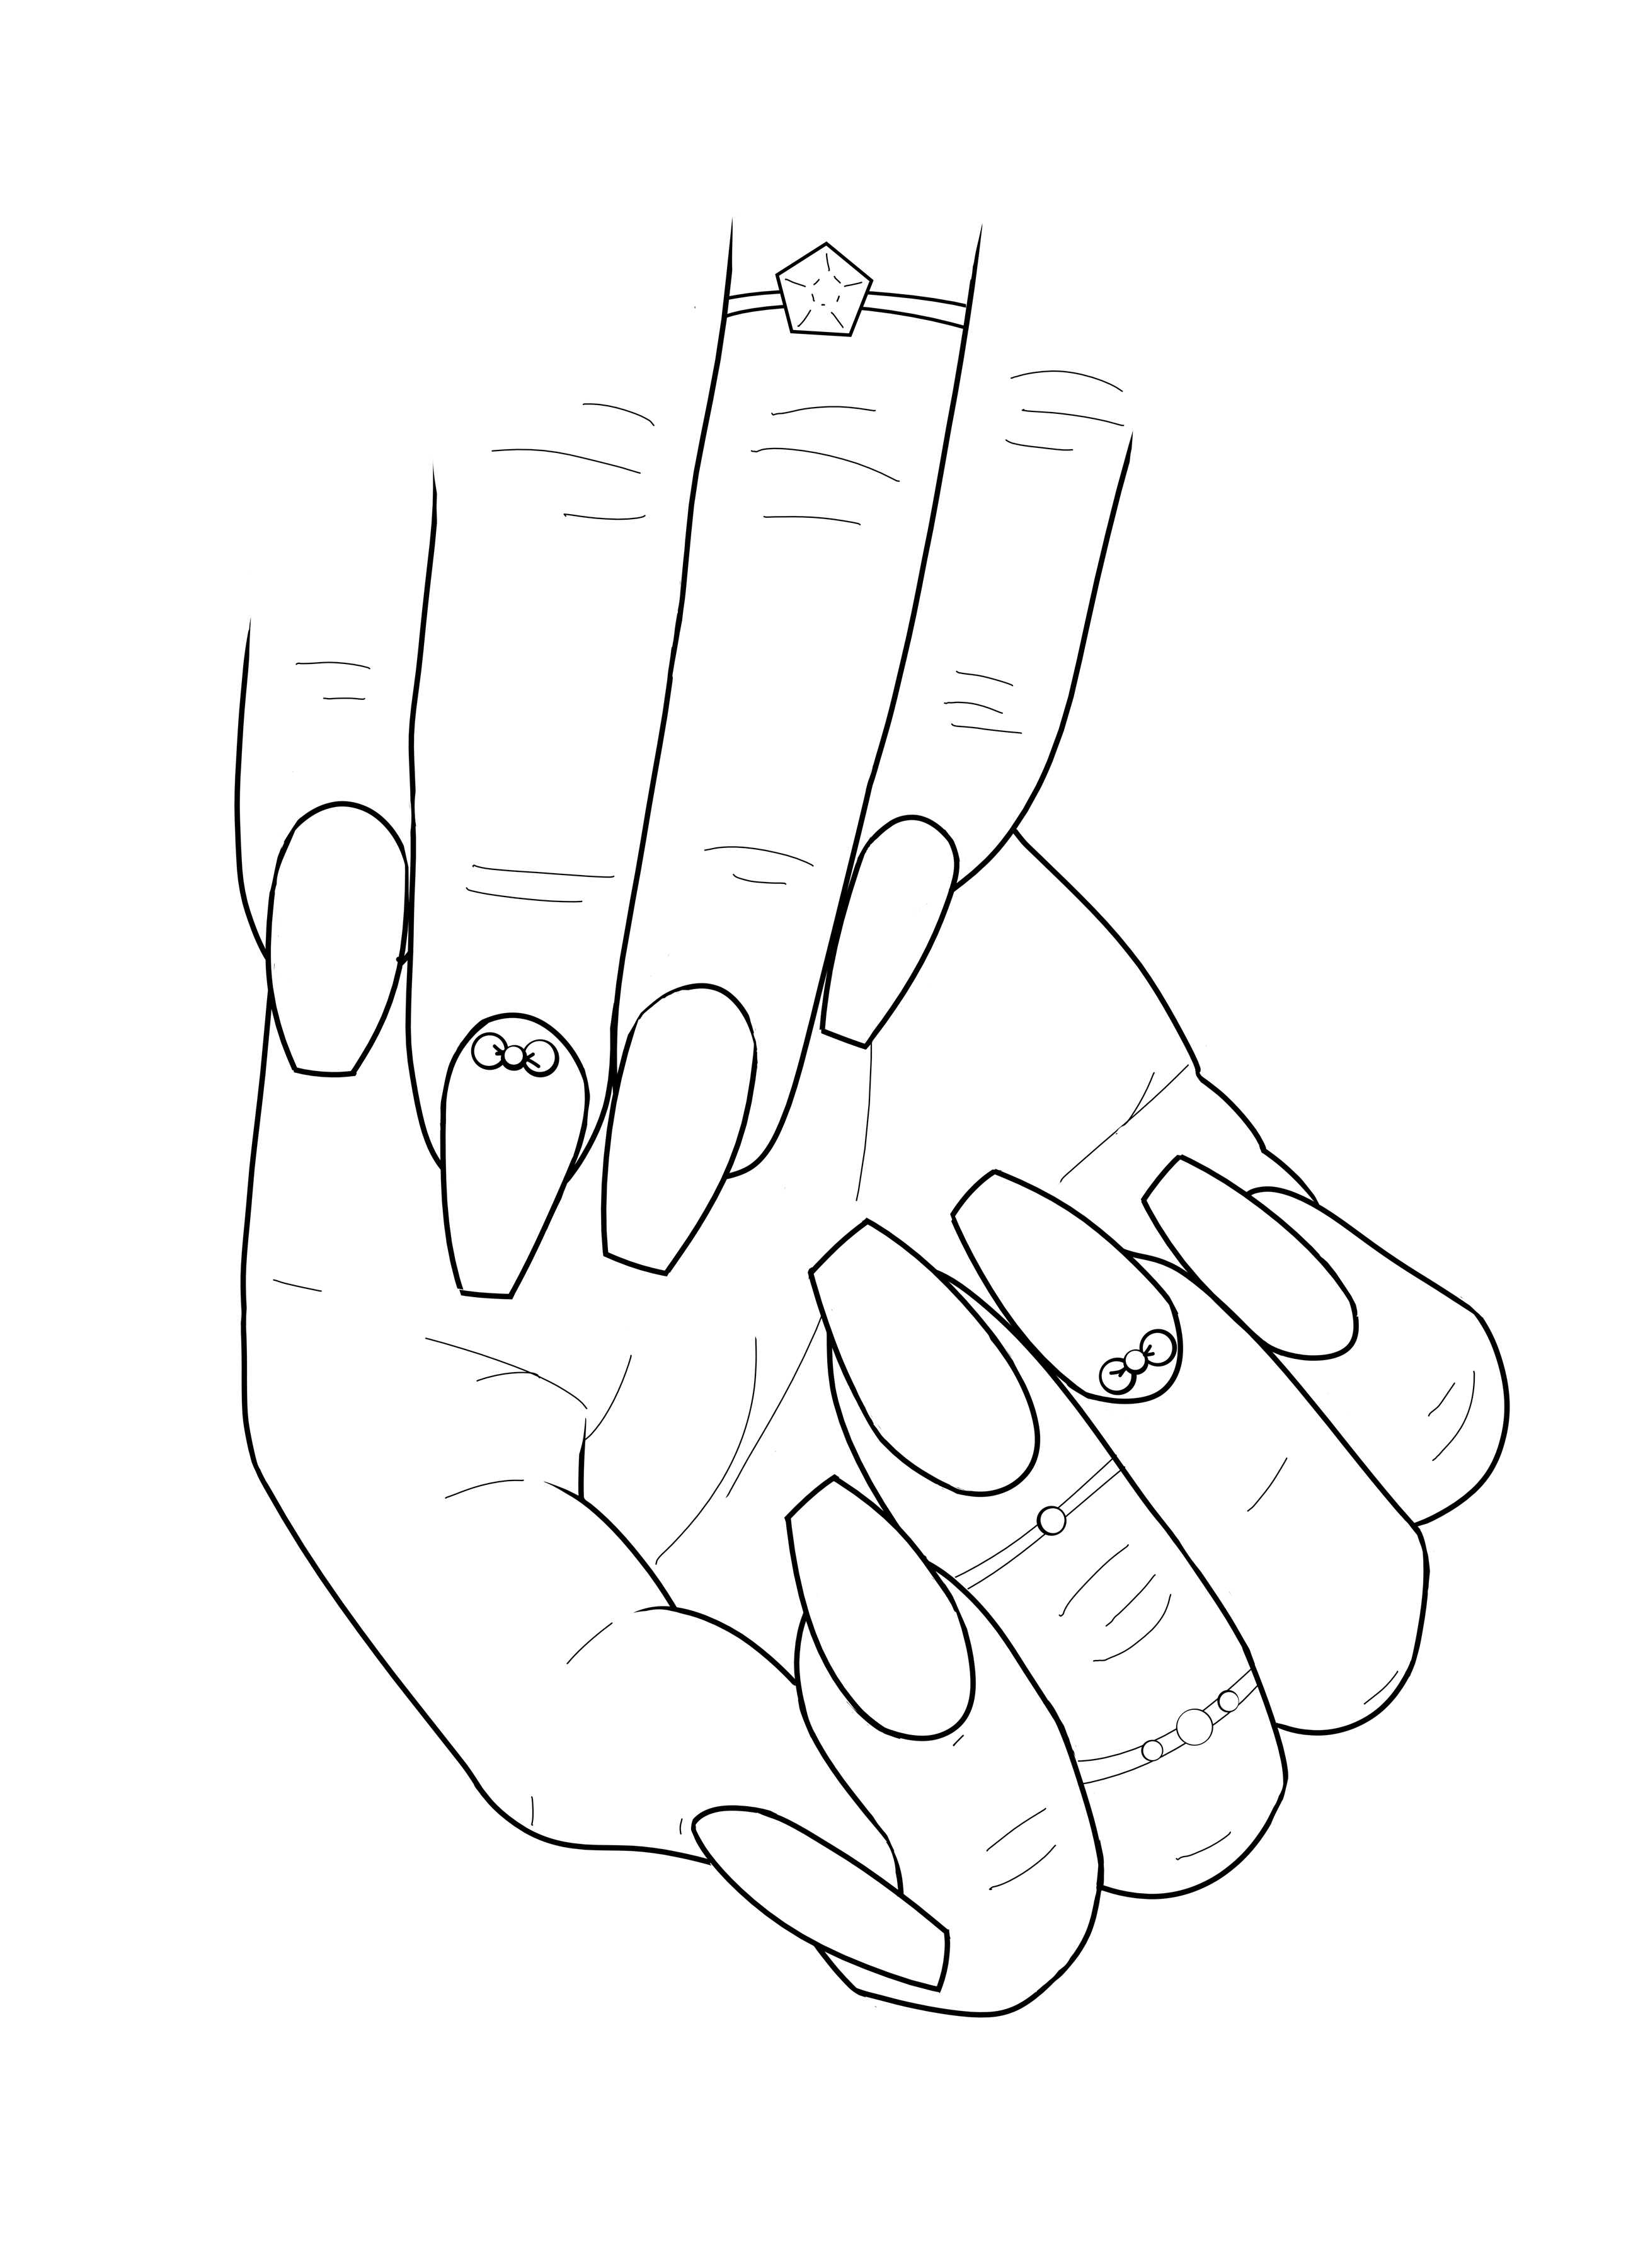 Coloring page from the Nail Art Adult Coloring Book, available on ...